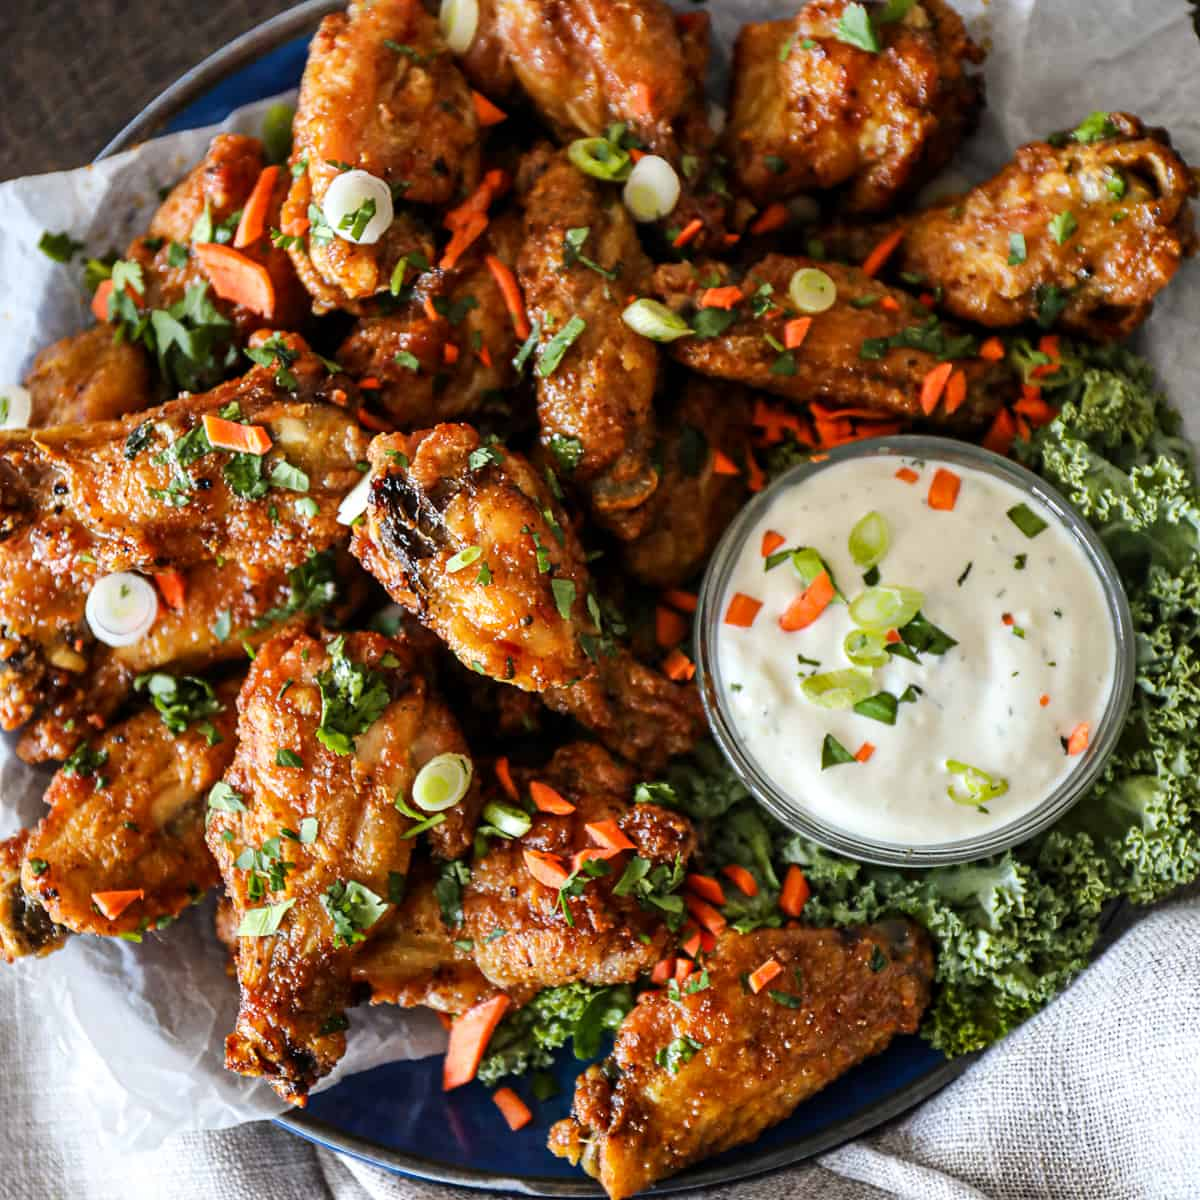 Top down shot of crispy baked chicken wings with blue cheese dressing on a party platter.